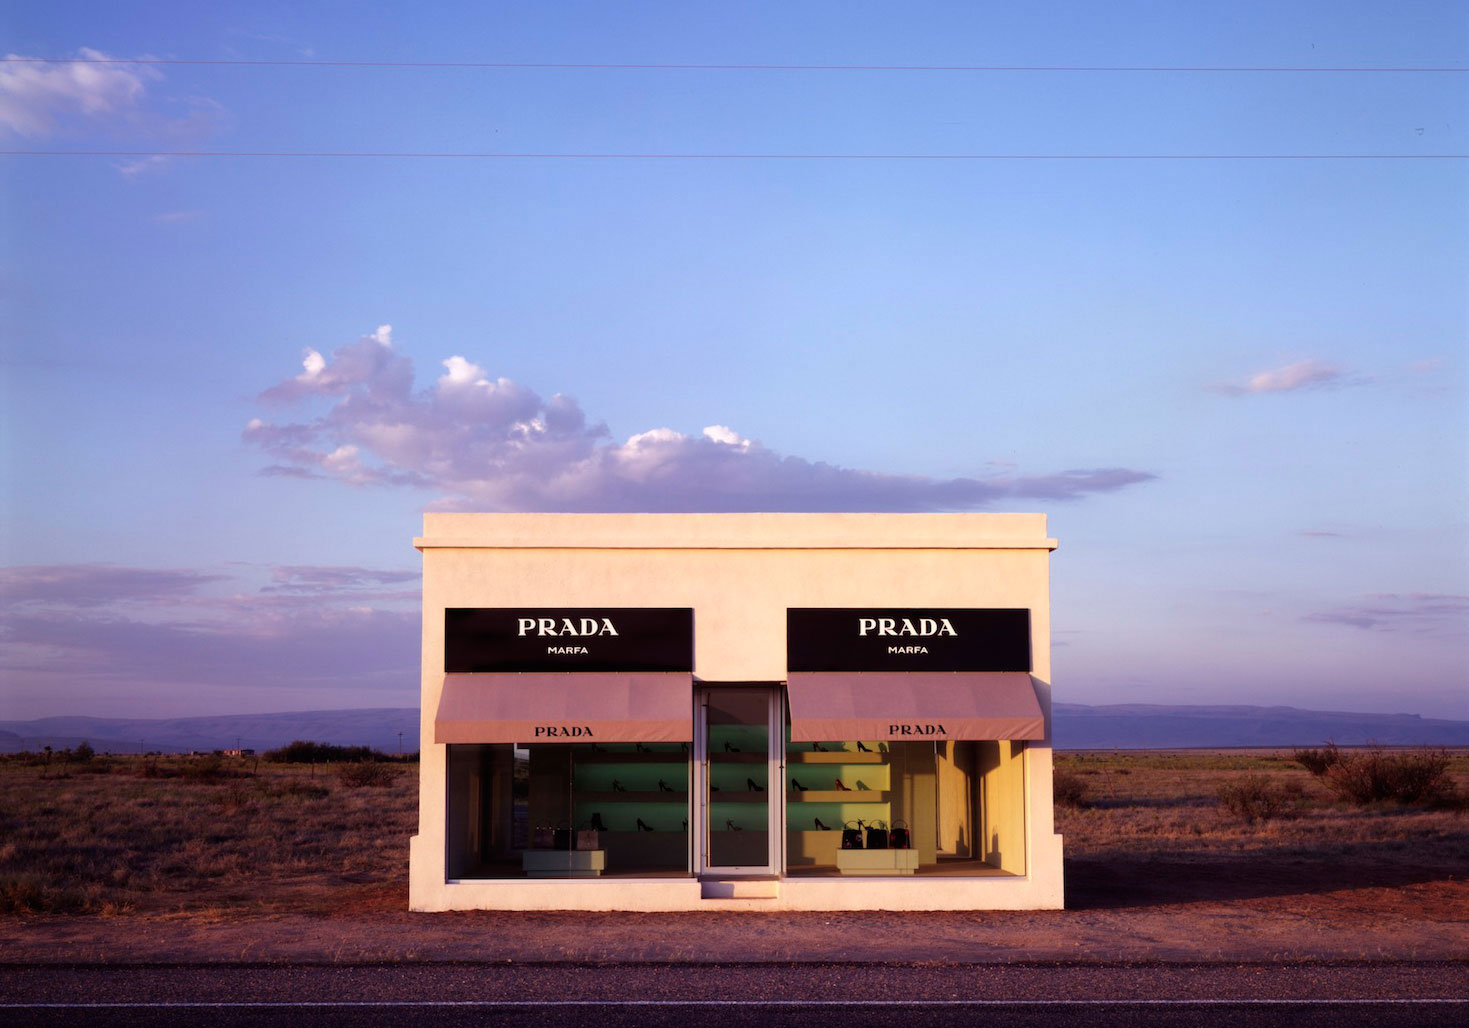 Prada Store in Marfa, Texas